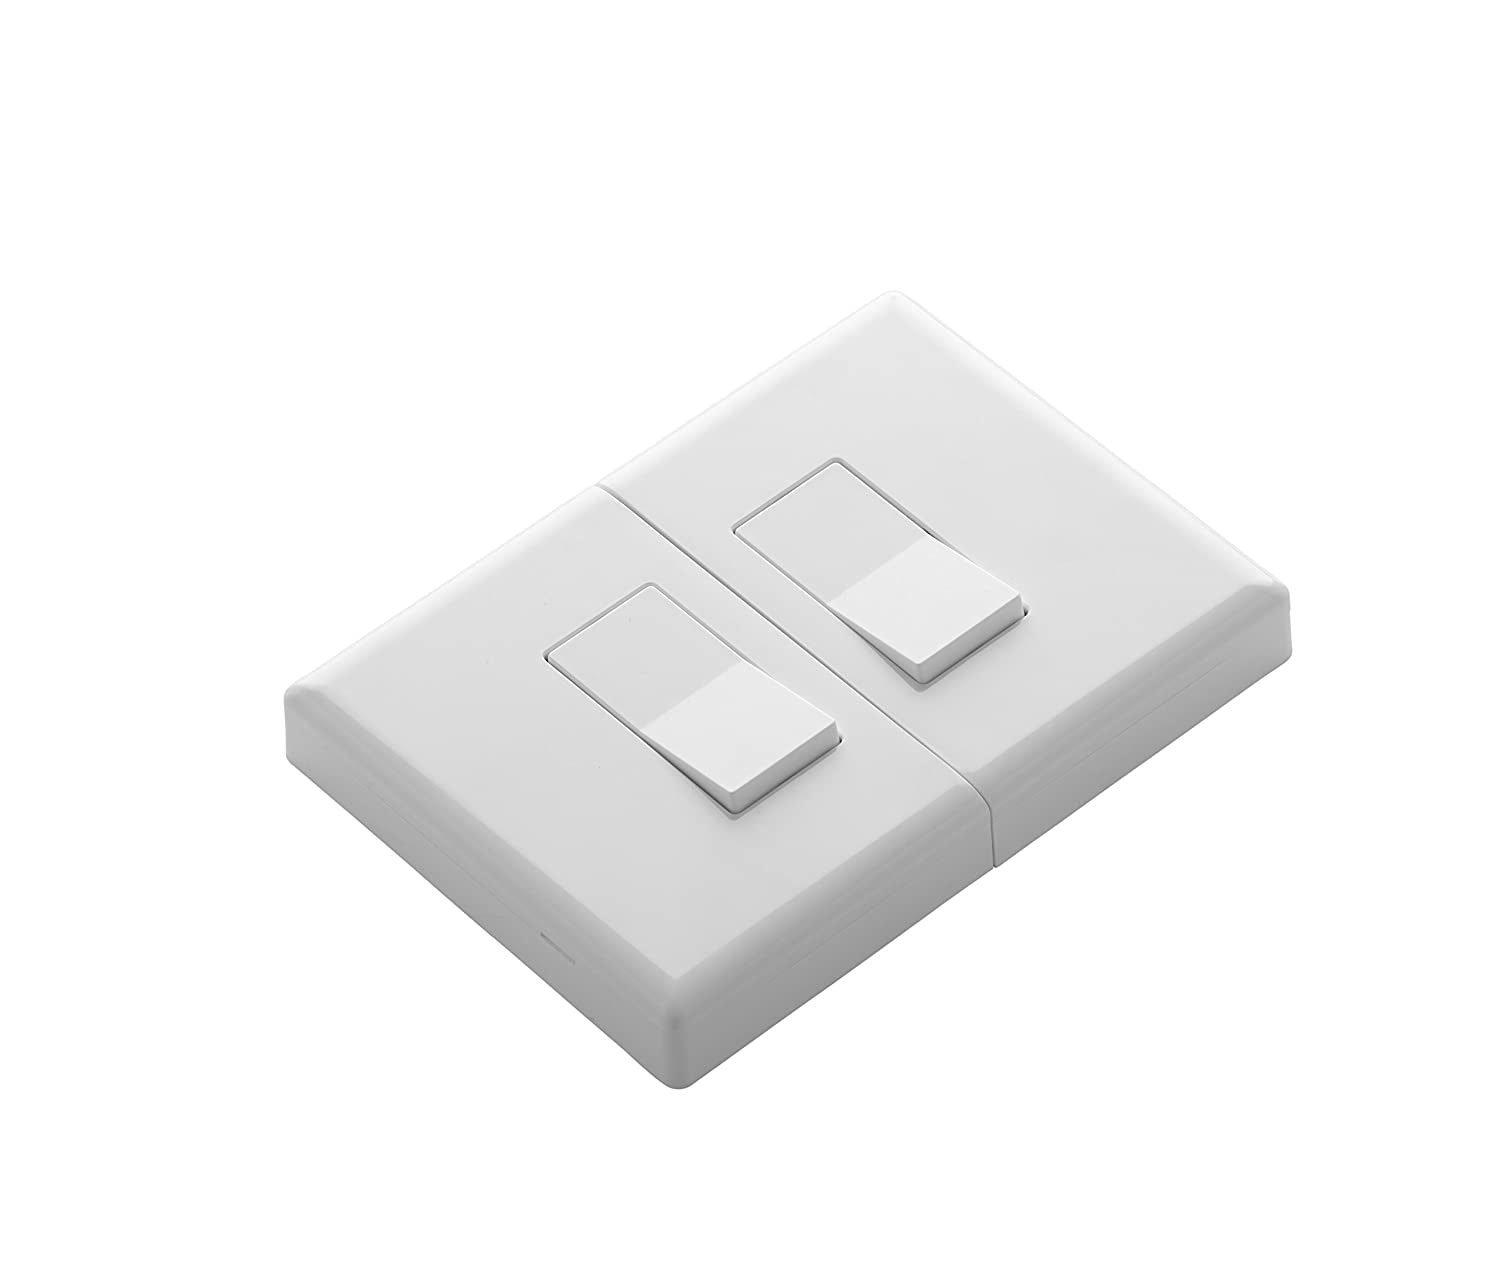 Home Automation Lighting, ZWAVE Plus Smart Switch by Ecolink, Lighting Control, White Dual Rocker Style Light Switch Design (PN - DDLS2-ZWAVE5)